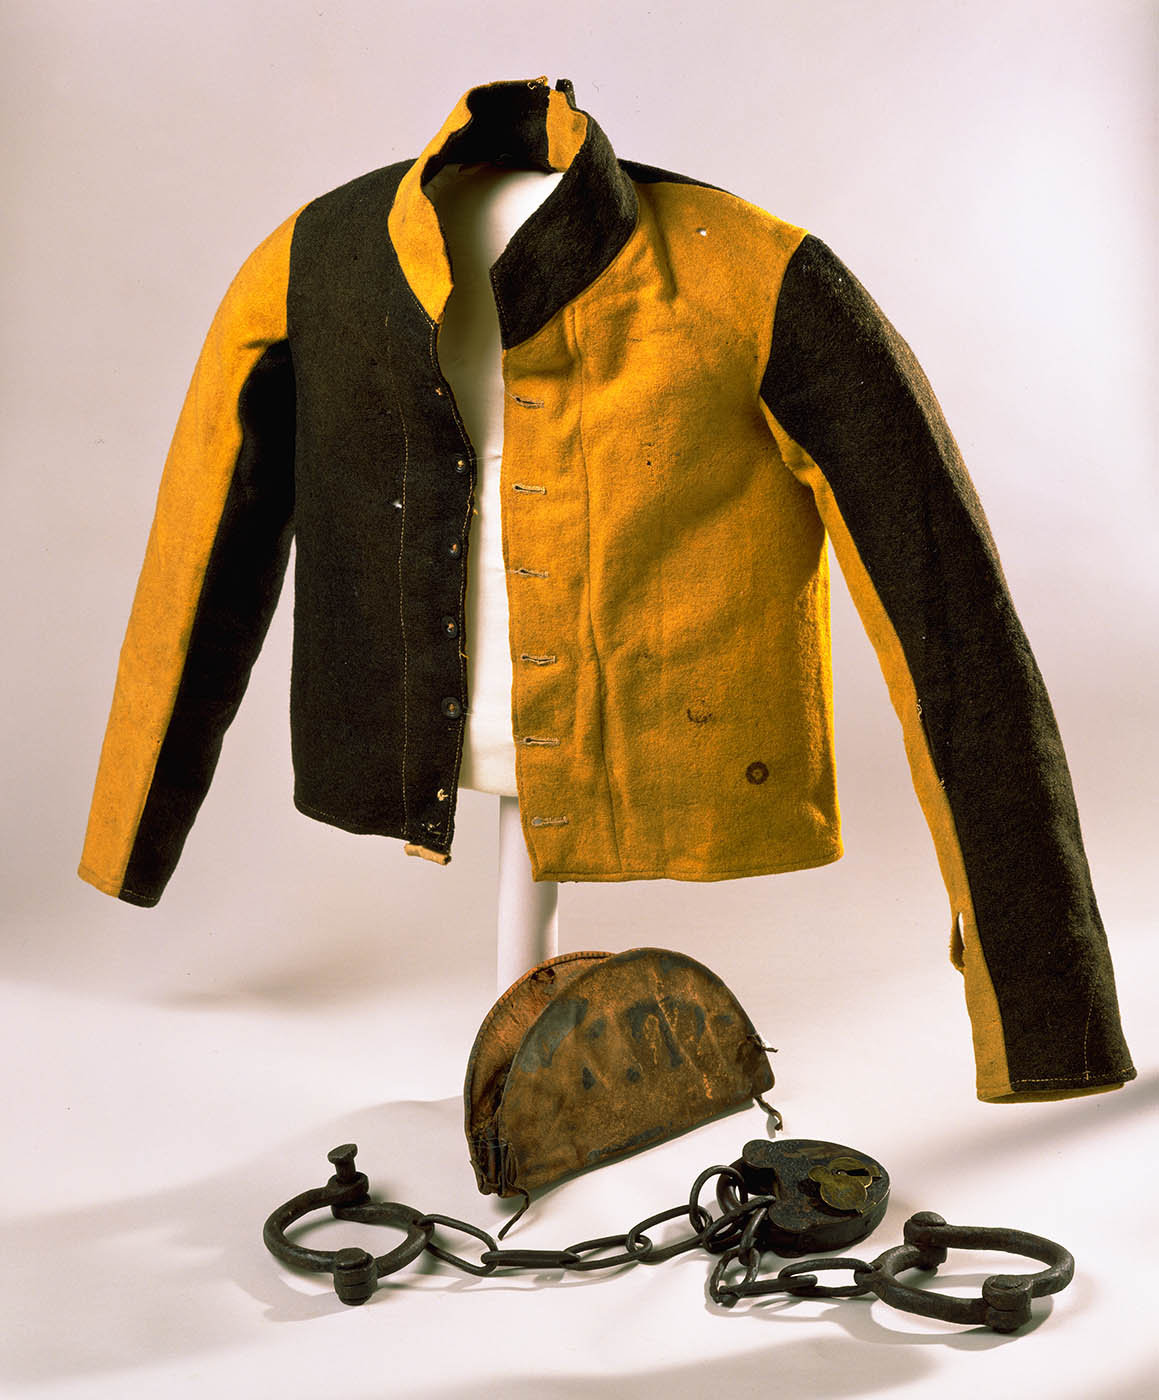 Yellow and black jacket, hand cuffs and pouch on display. - click to view larger image